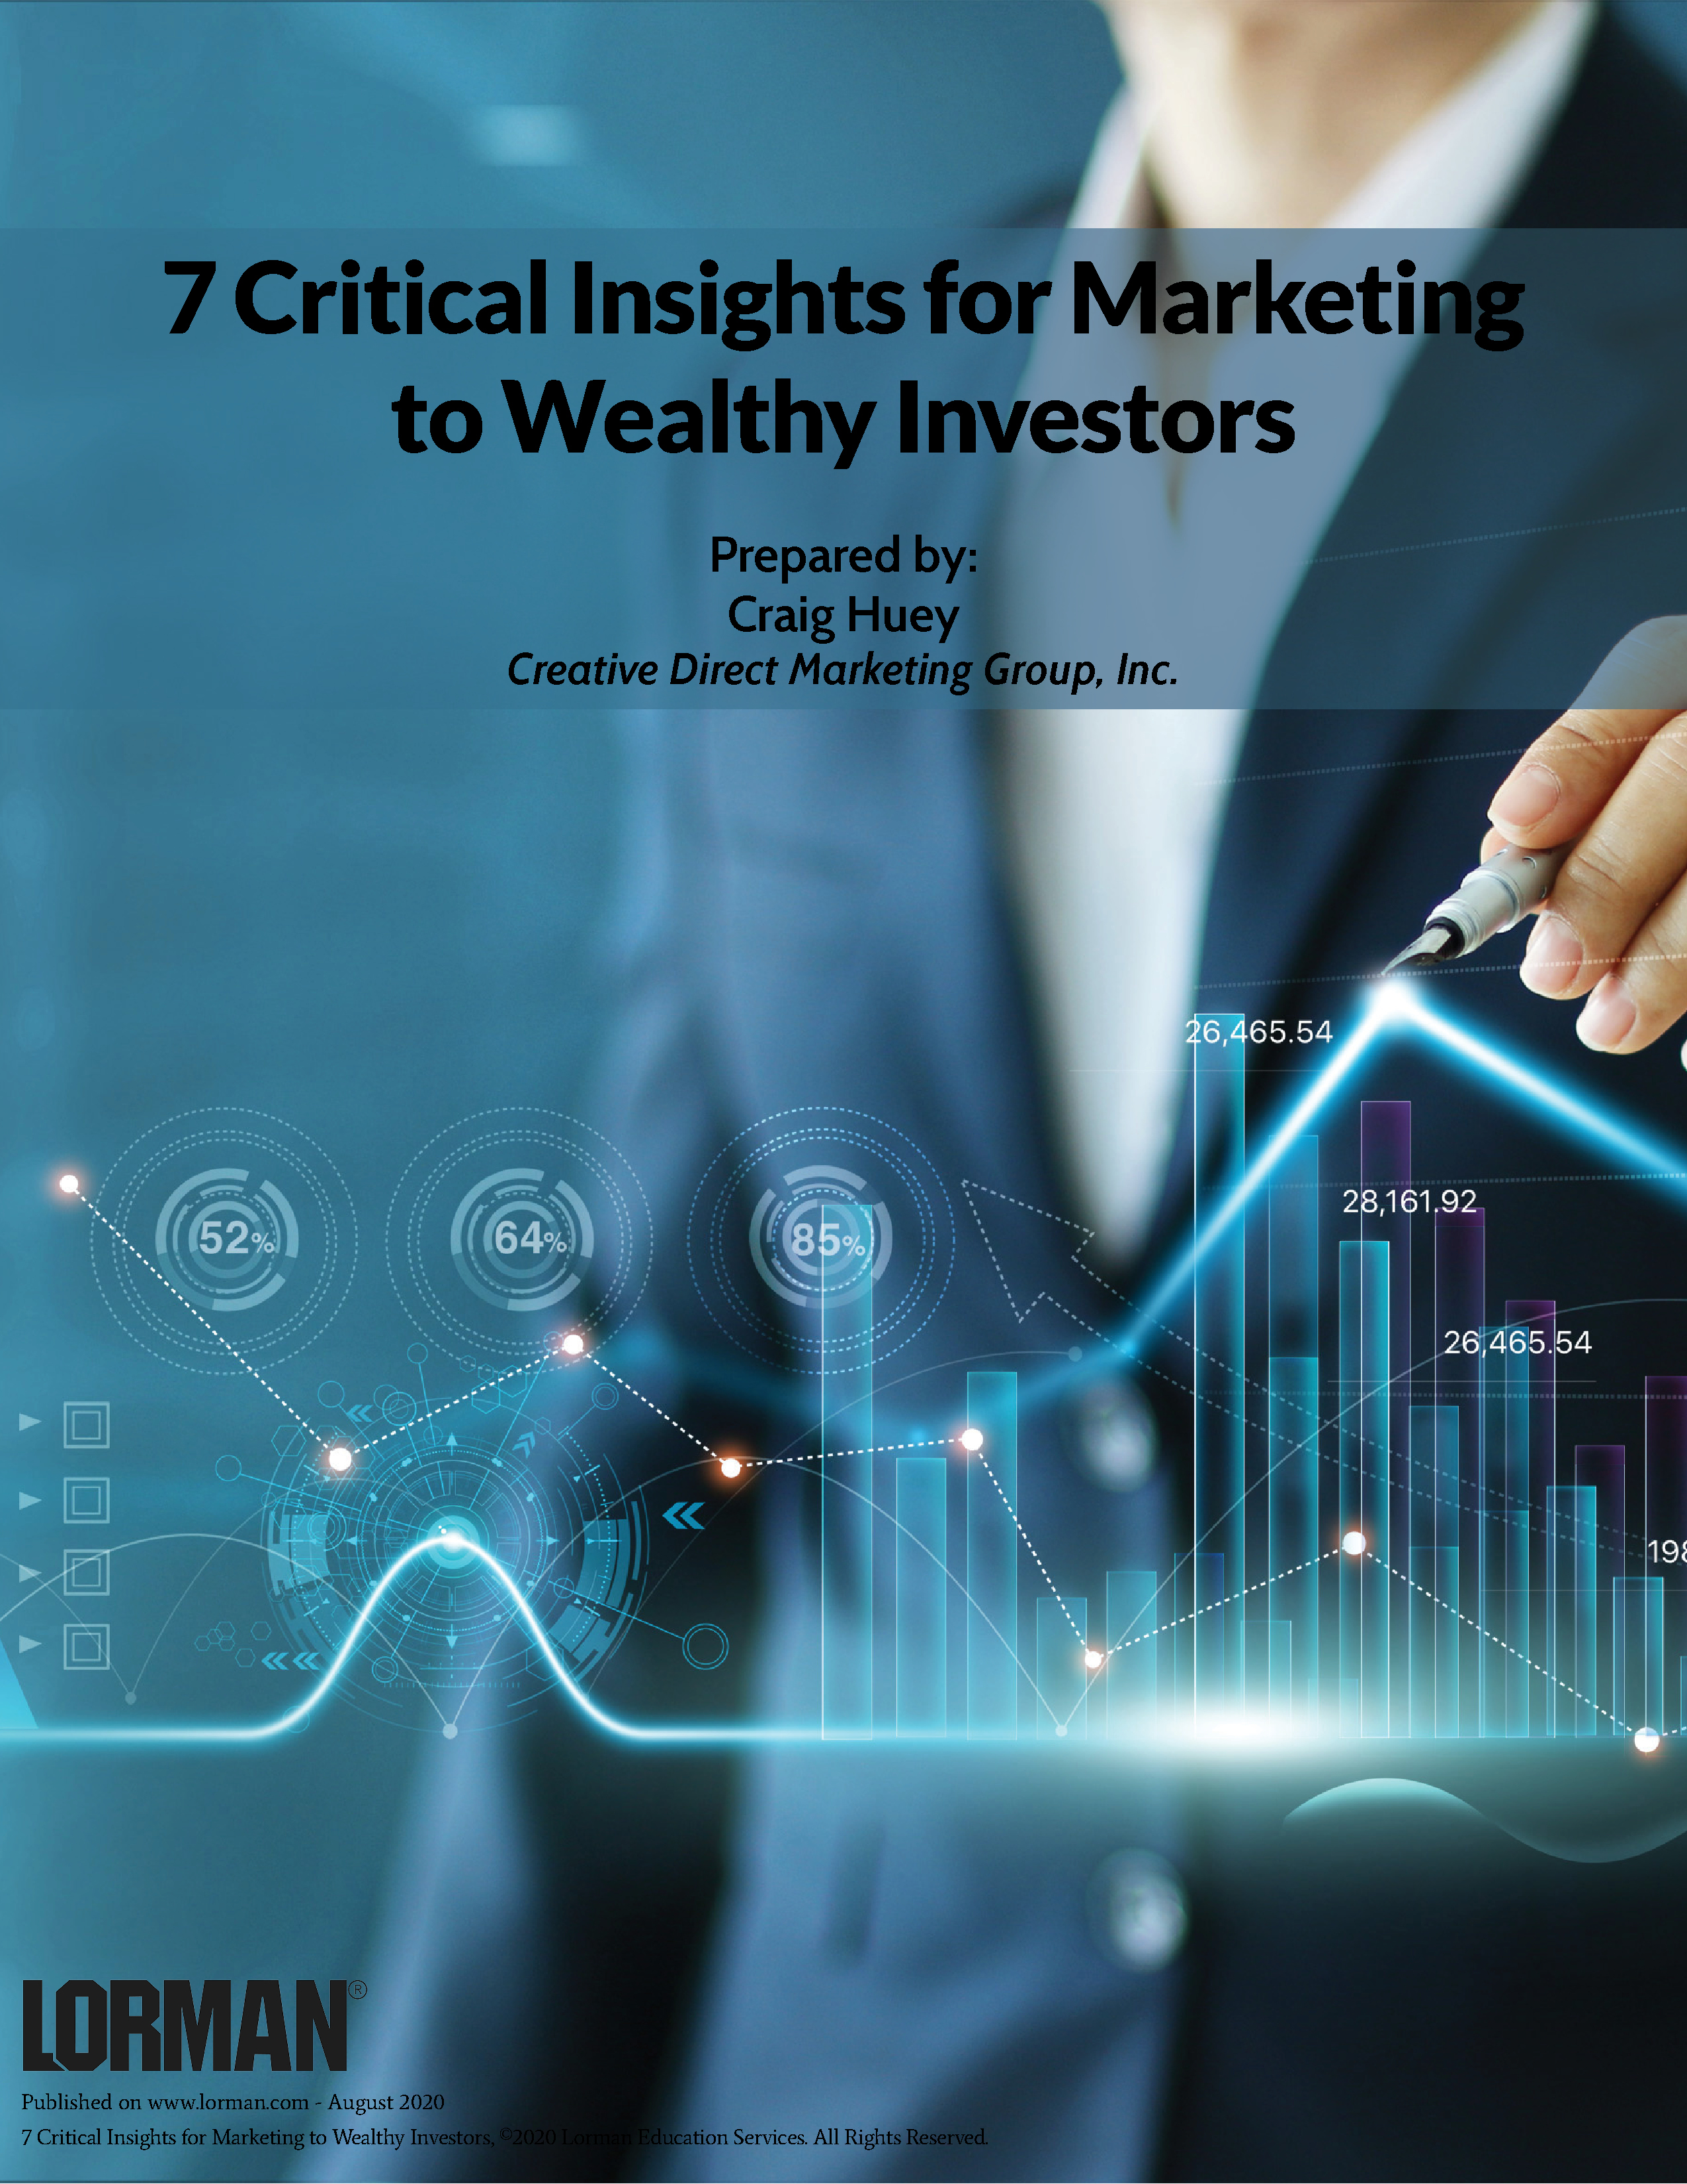 7 Critical Insights for Marketing to Wealthy Investors